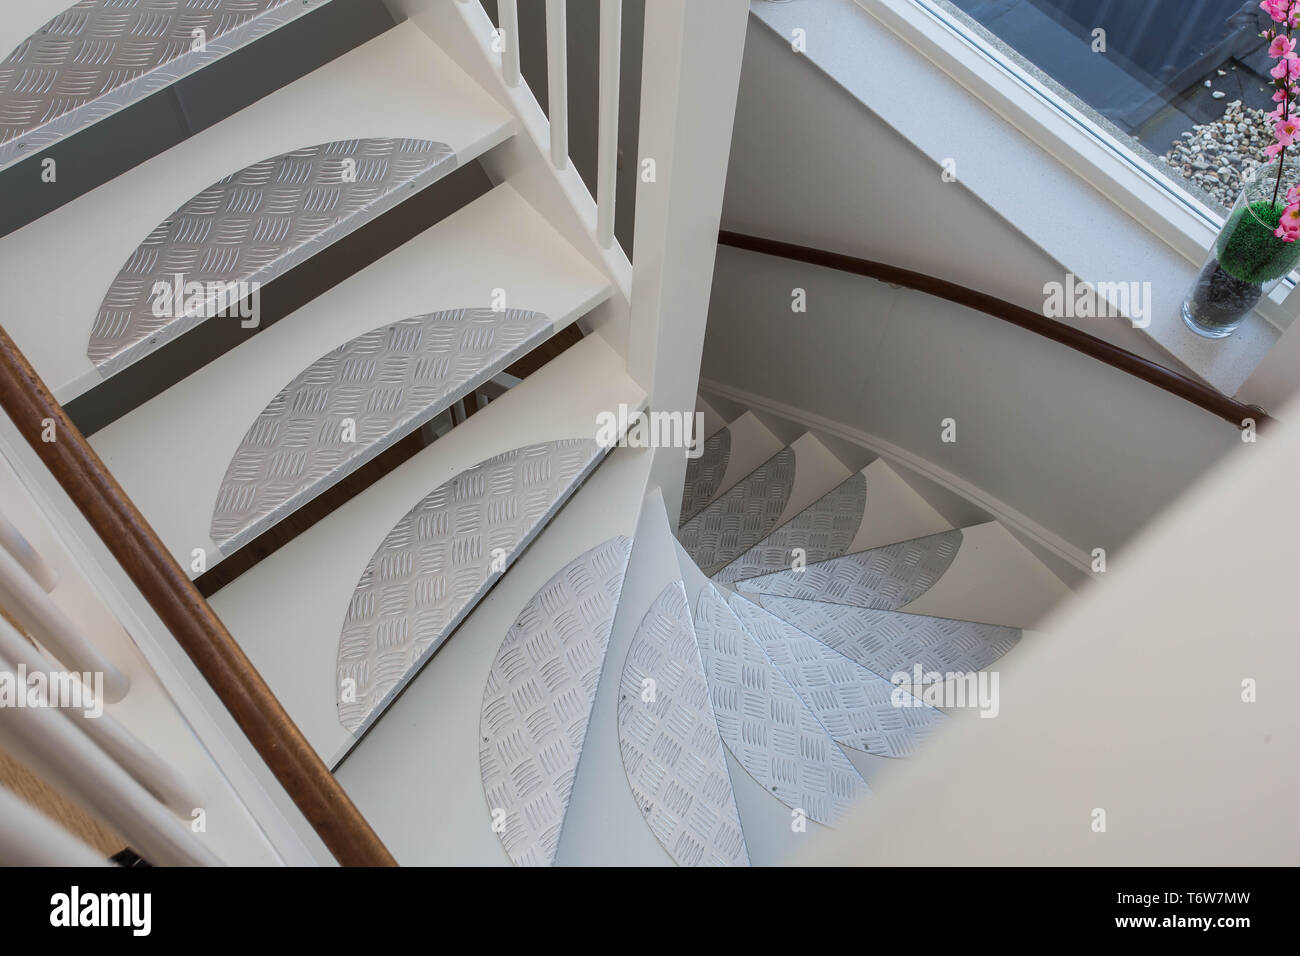 White classic staircase in ariel view, new design - Stock Image